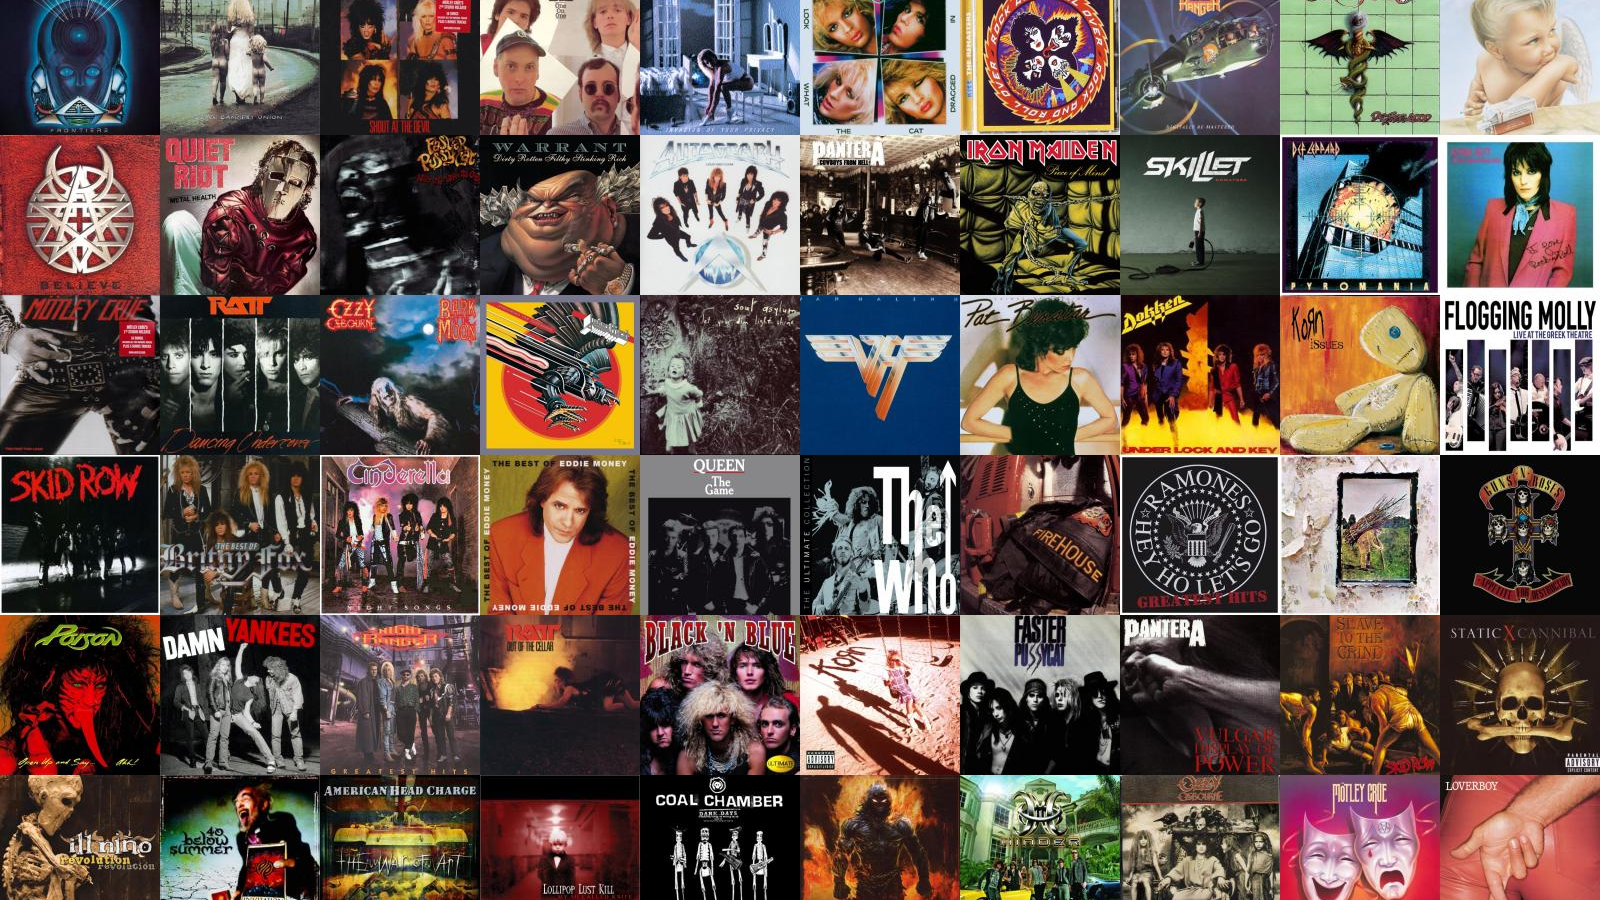 Free Download Classic Rock Album Covers Wallpaper 1600x950 For